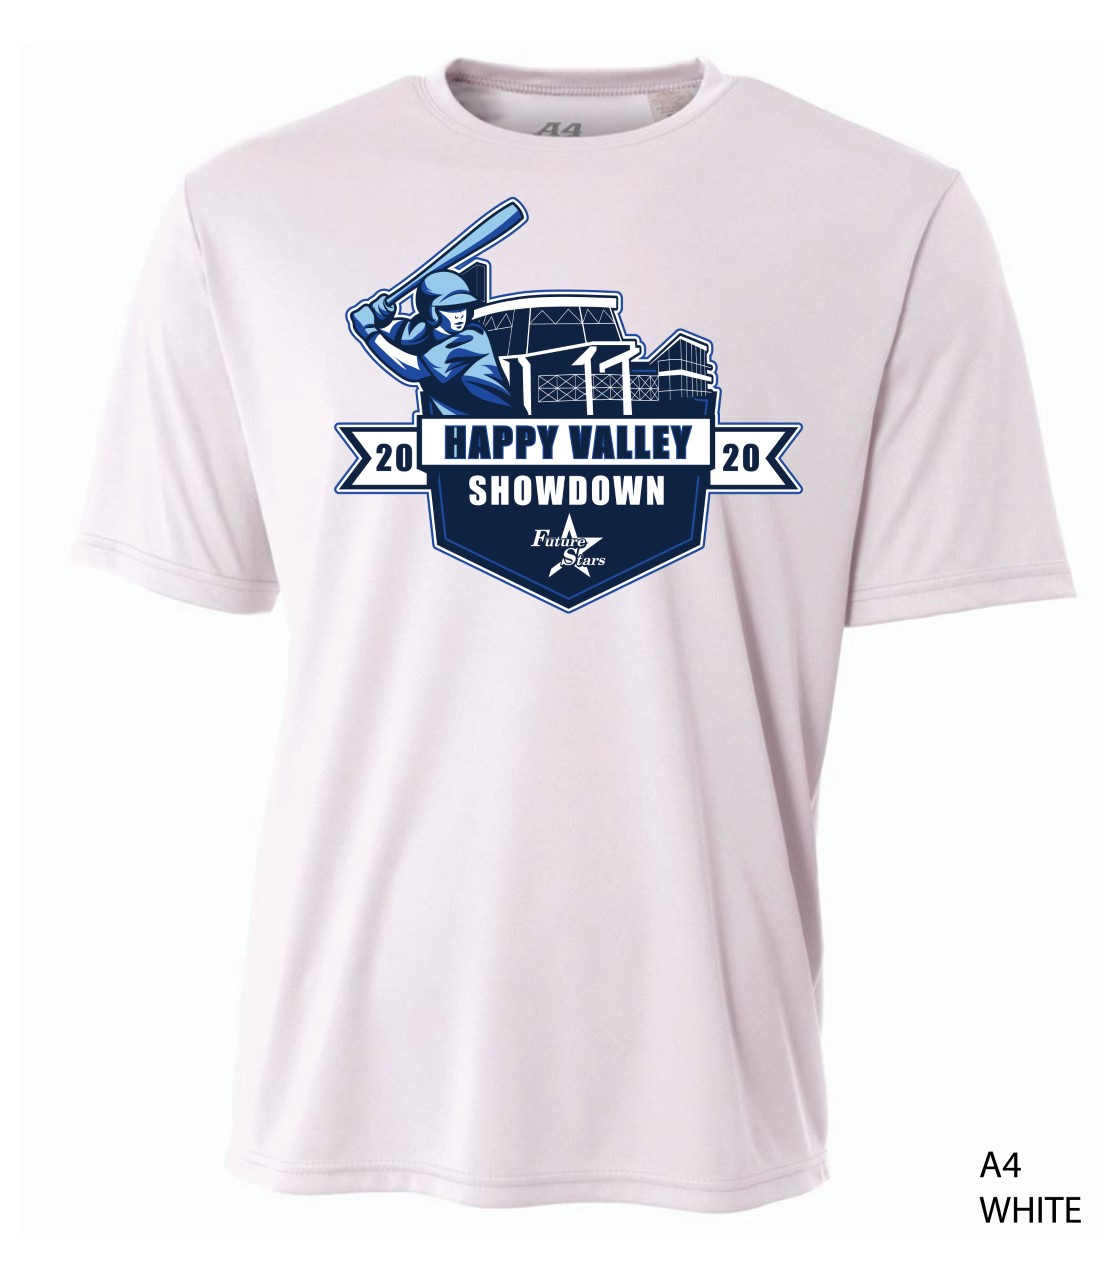 Happy Valley Showdown Dry Fits For Sale - $20 at your Field- Limited Supply